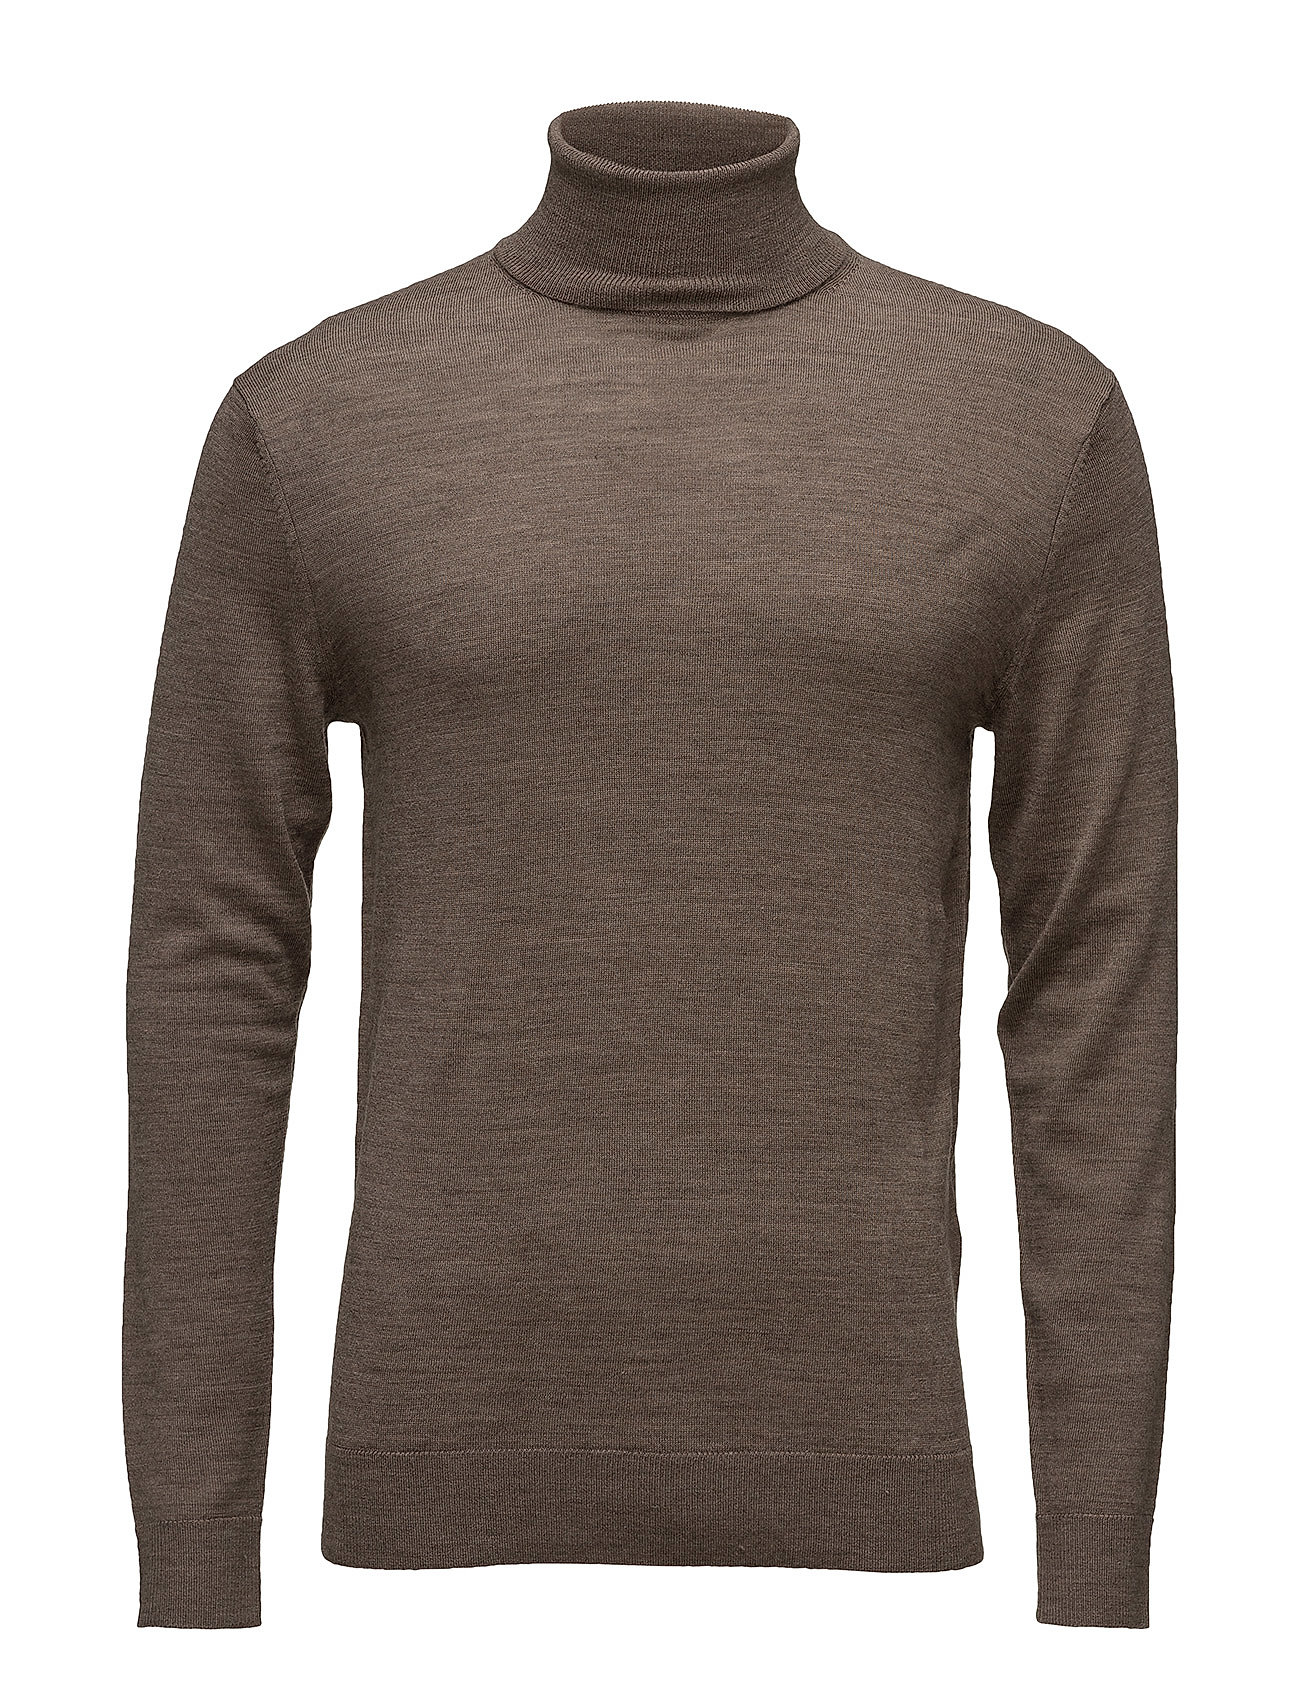 jack & jones premium Jprmark knit roll neck på boozt.com dk